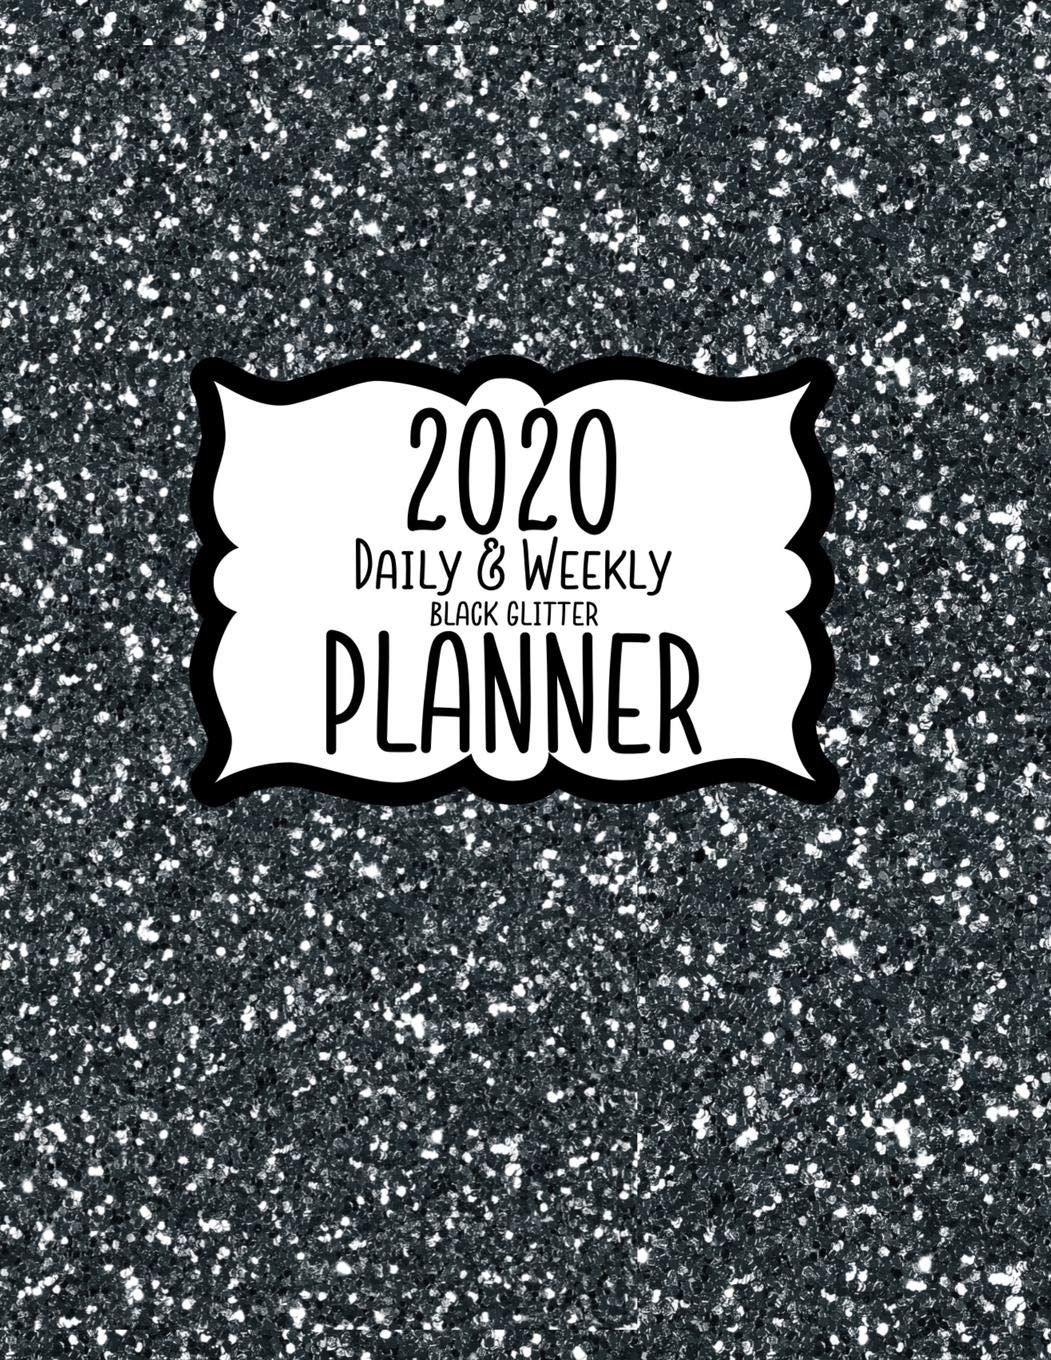 2020 Daily & Weekly Black Glitter Planner: 8.5 x 11 Faux ...